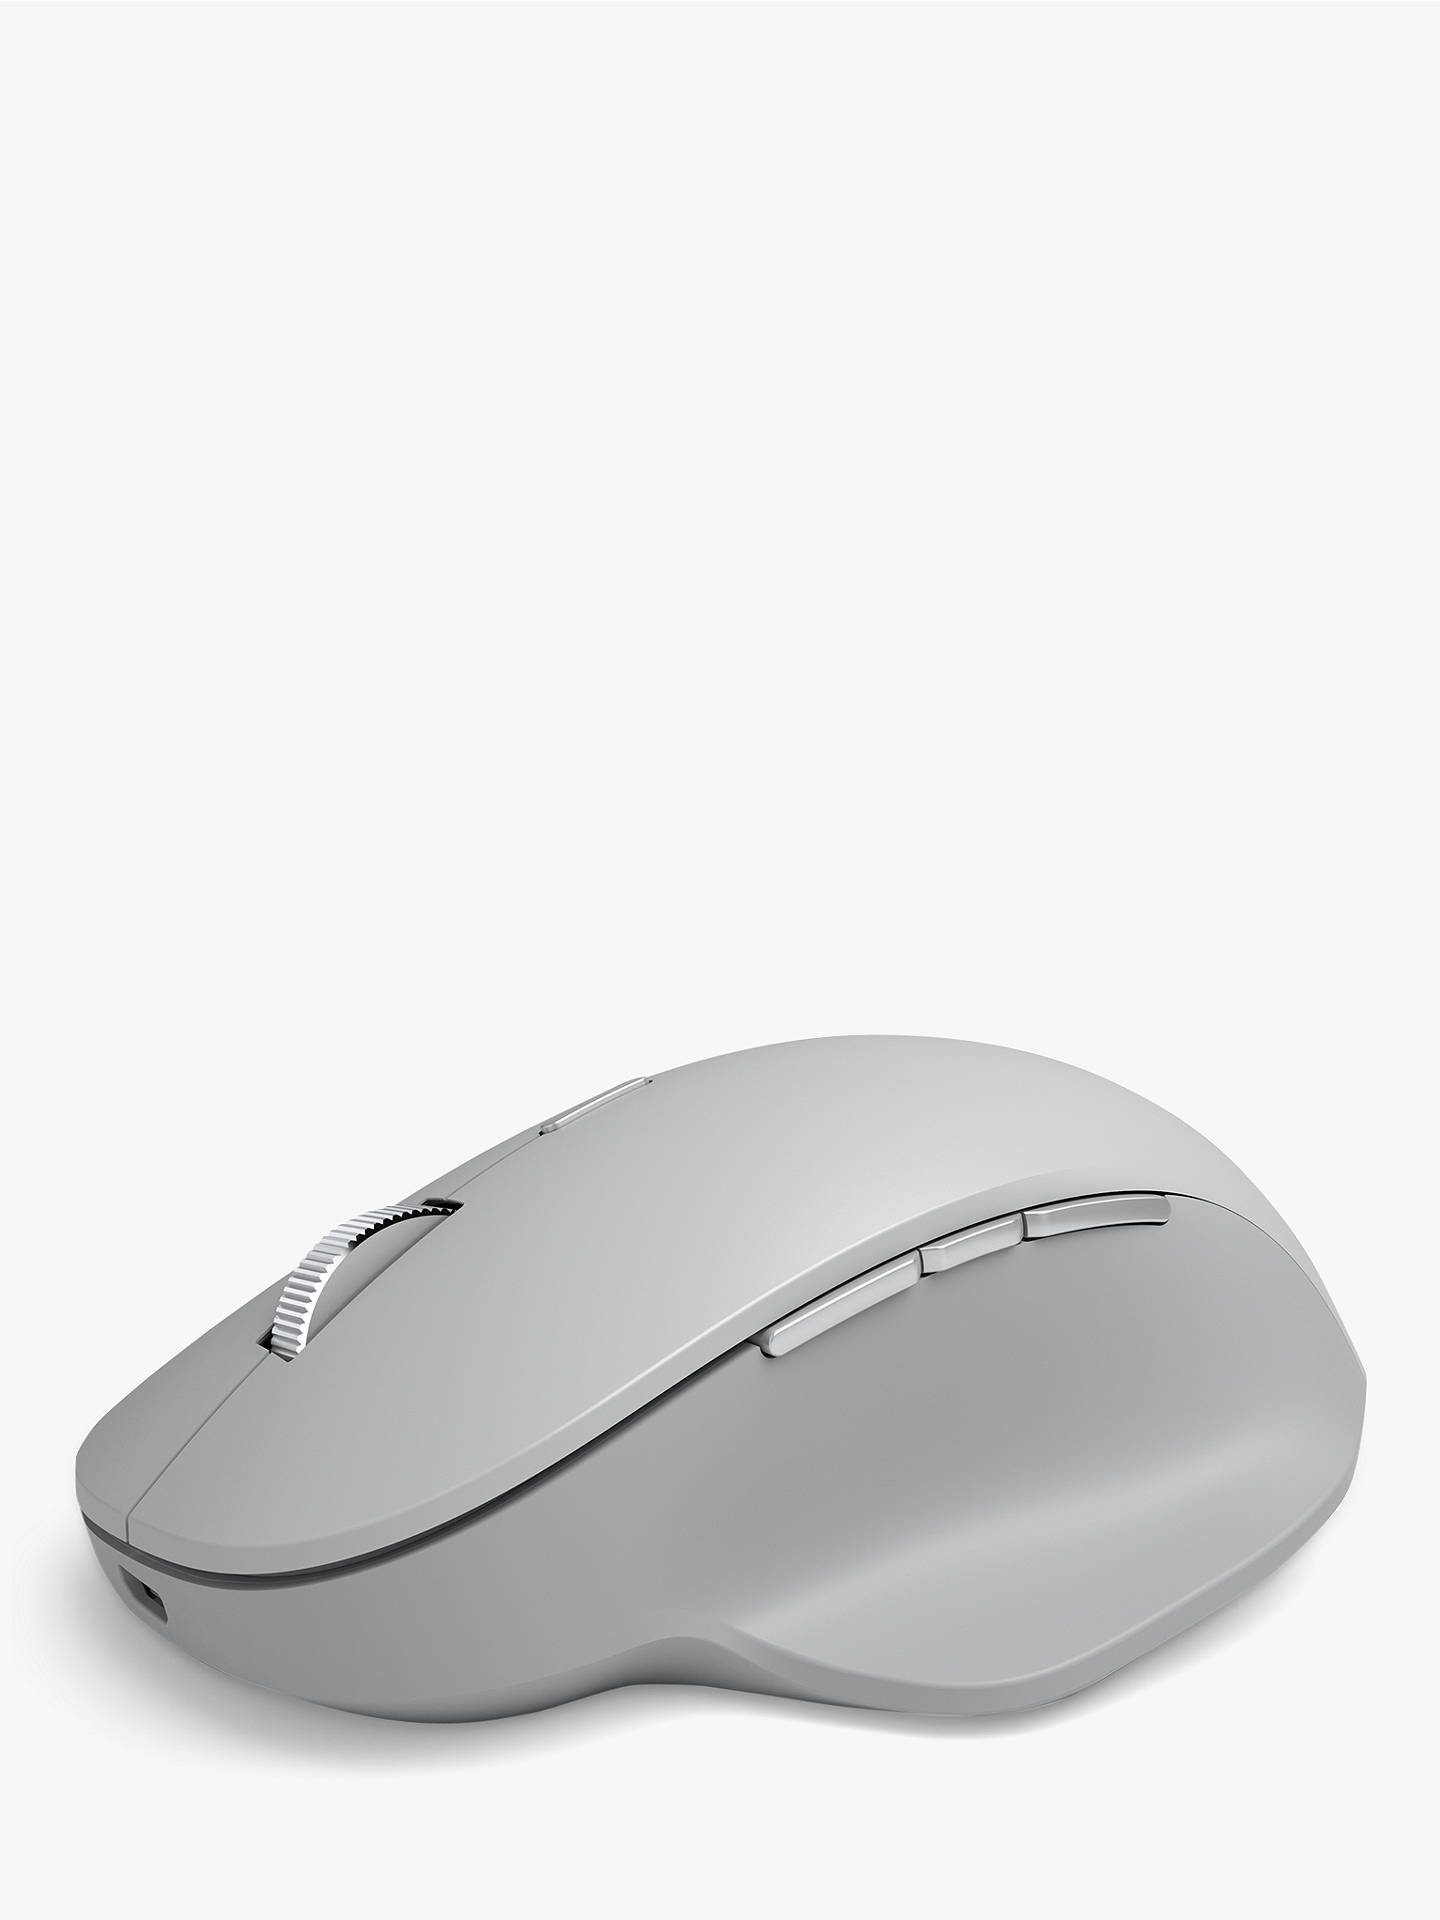 a6c19d24be0 Buy Microsoft Surface Wireless Precision Mouse